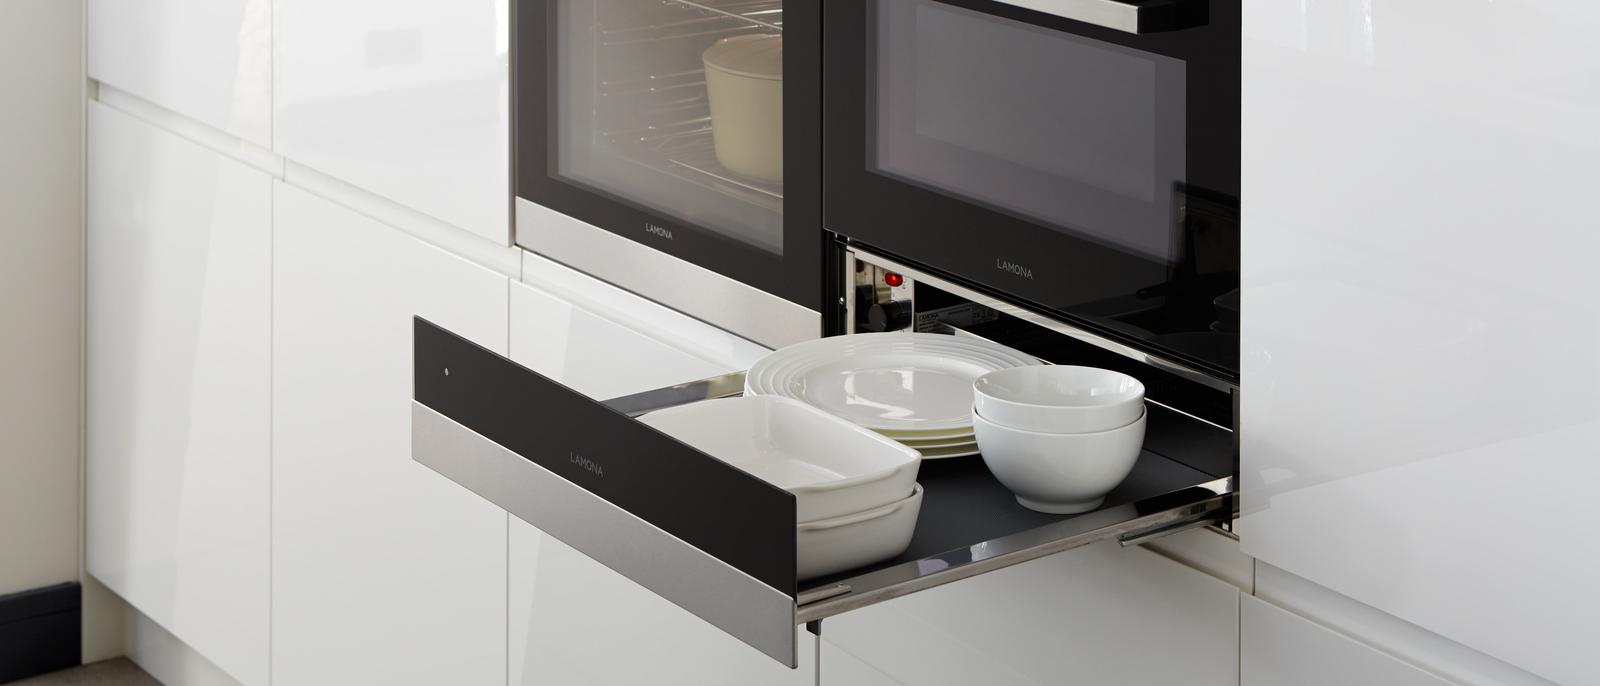 Gloss White Integrated Handle mixed with Gloss Graphite Integrated Handle Lamona Warming Drawer